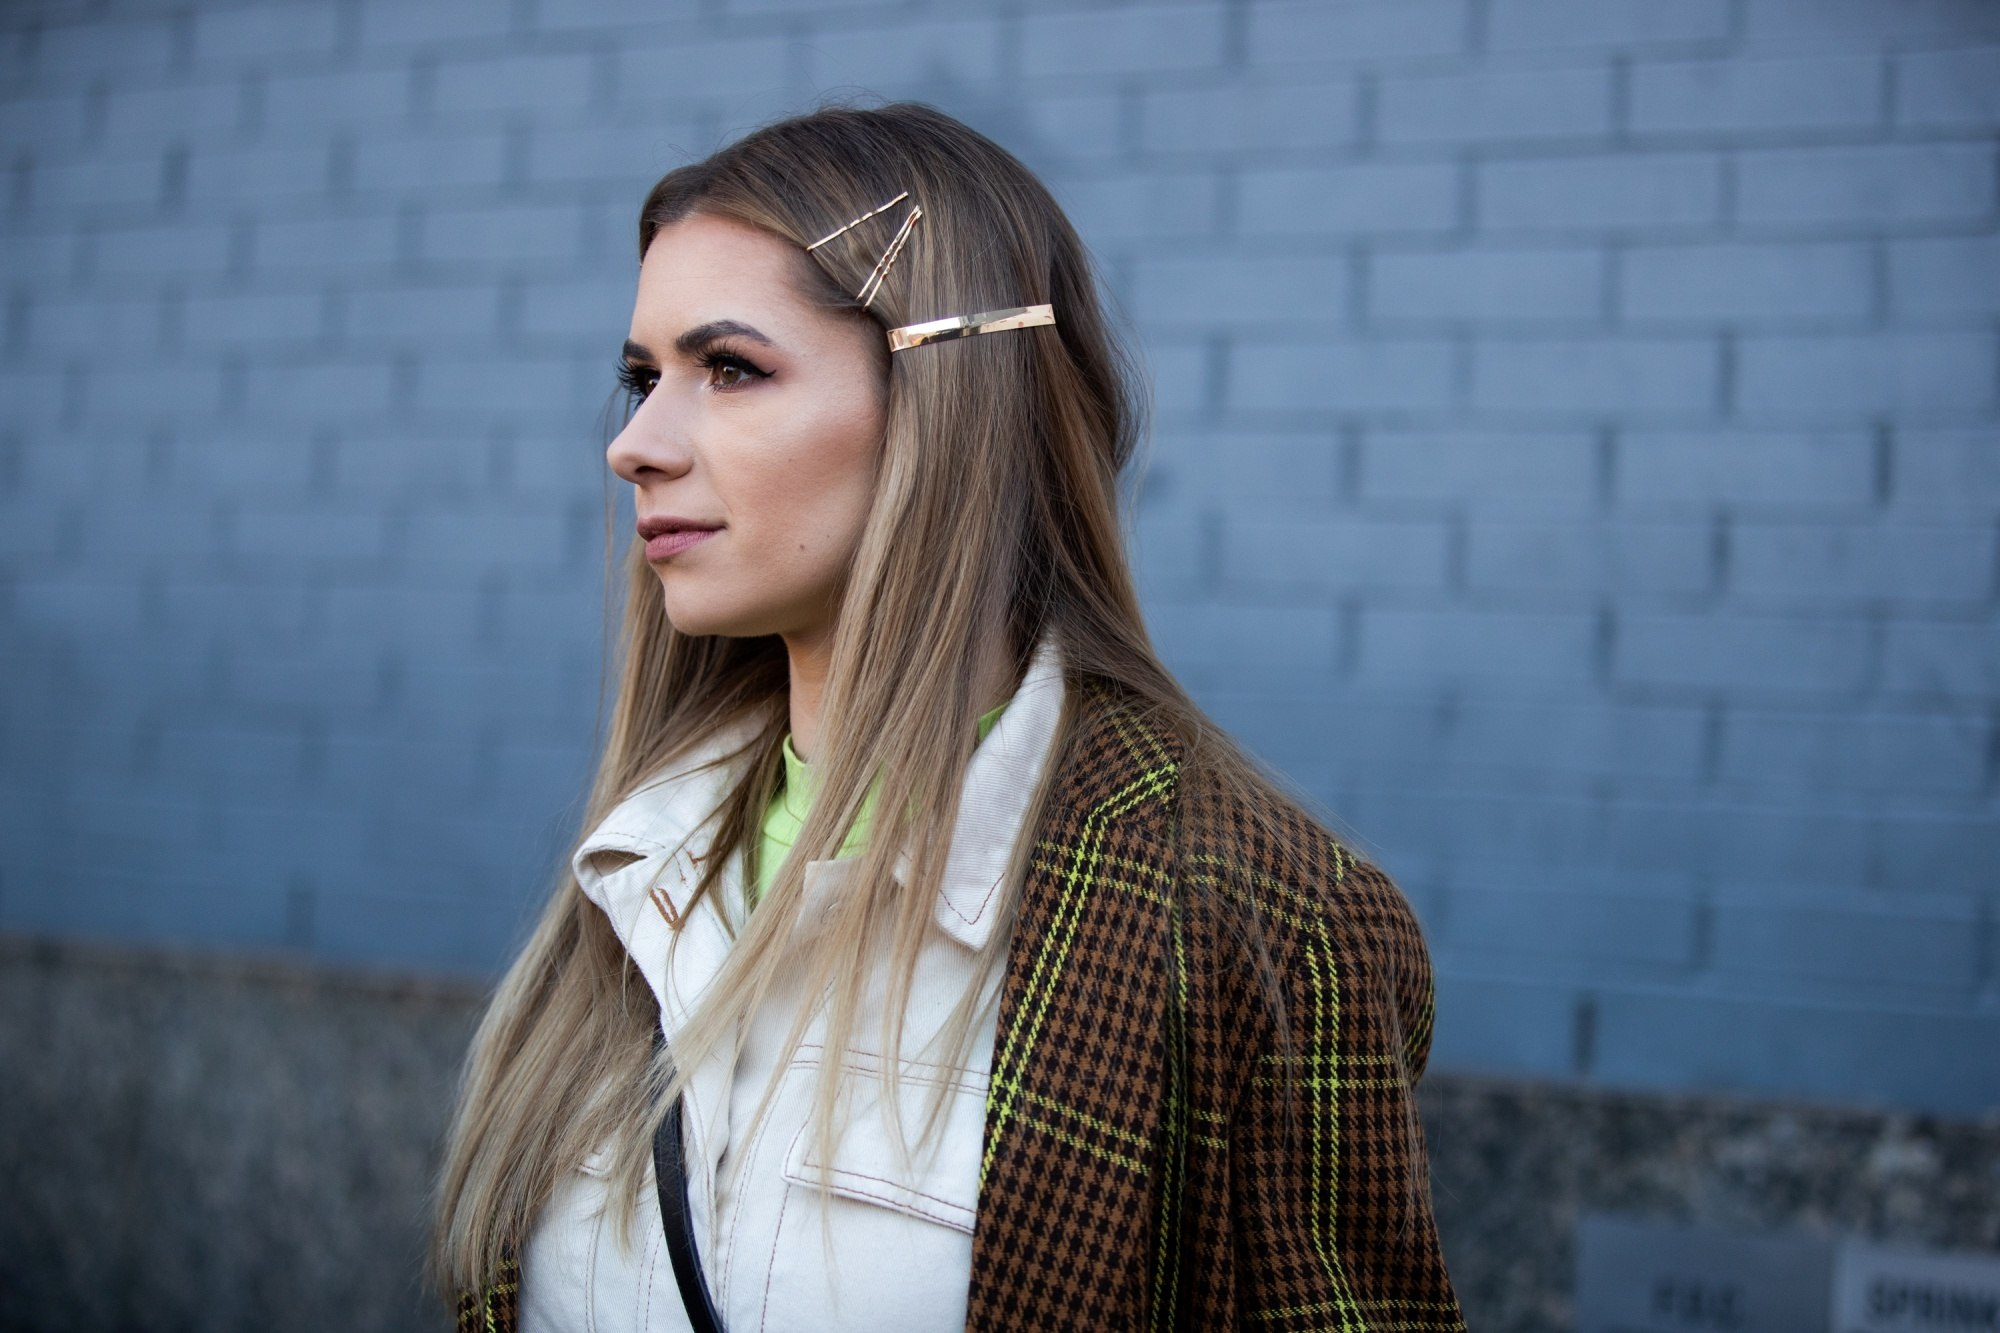 Street style hair inspiration: Woman with long straight blonde hair wearing hair clips and a brown jacket outdoors